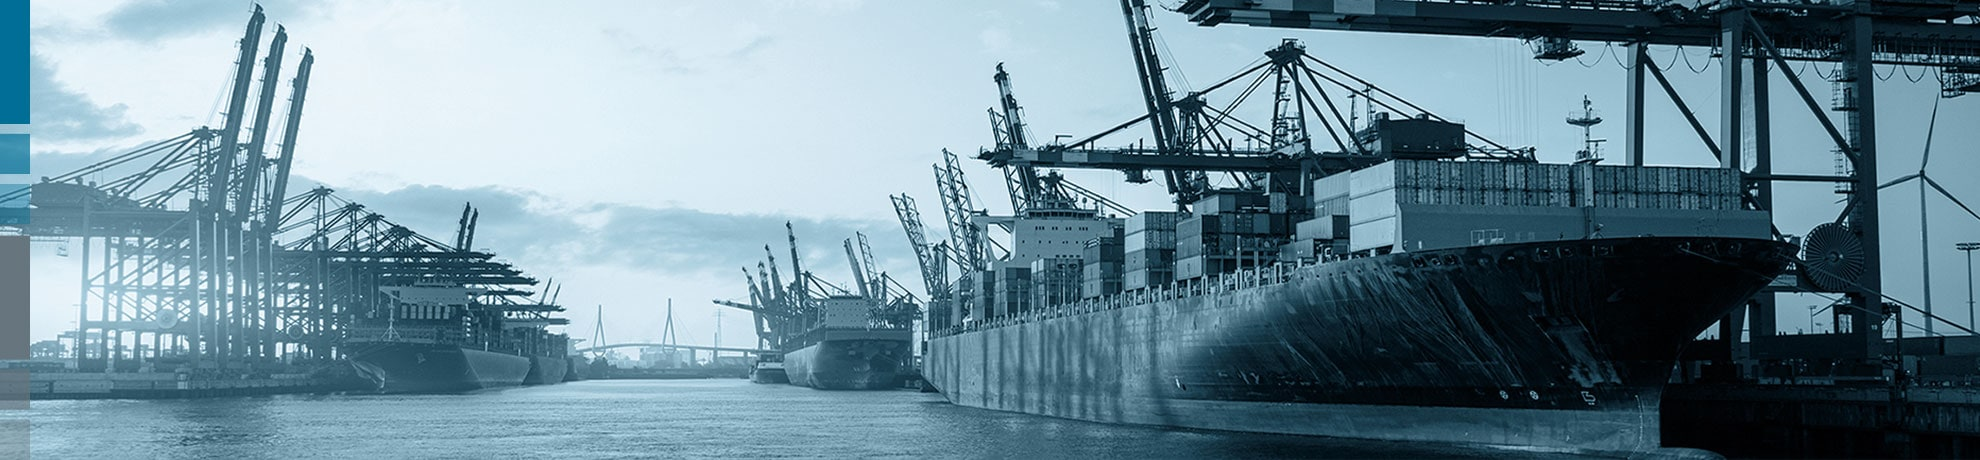 Port of Hamburg with Köhlbrand Bridge and container ships as a symbol for the Feddersen Group's overseas trade.